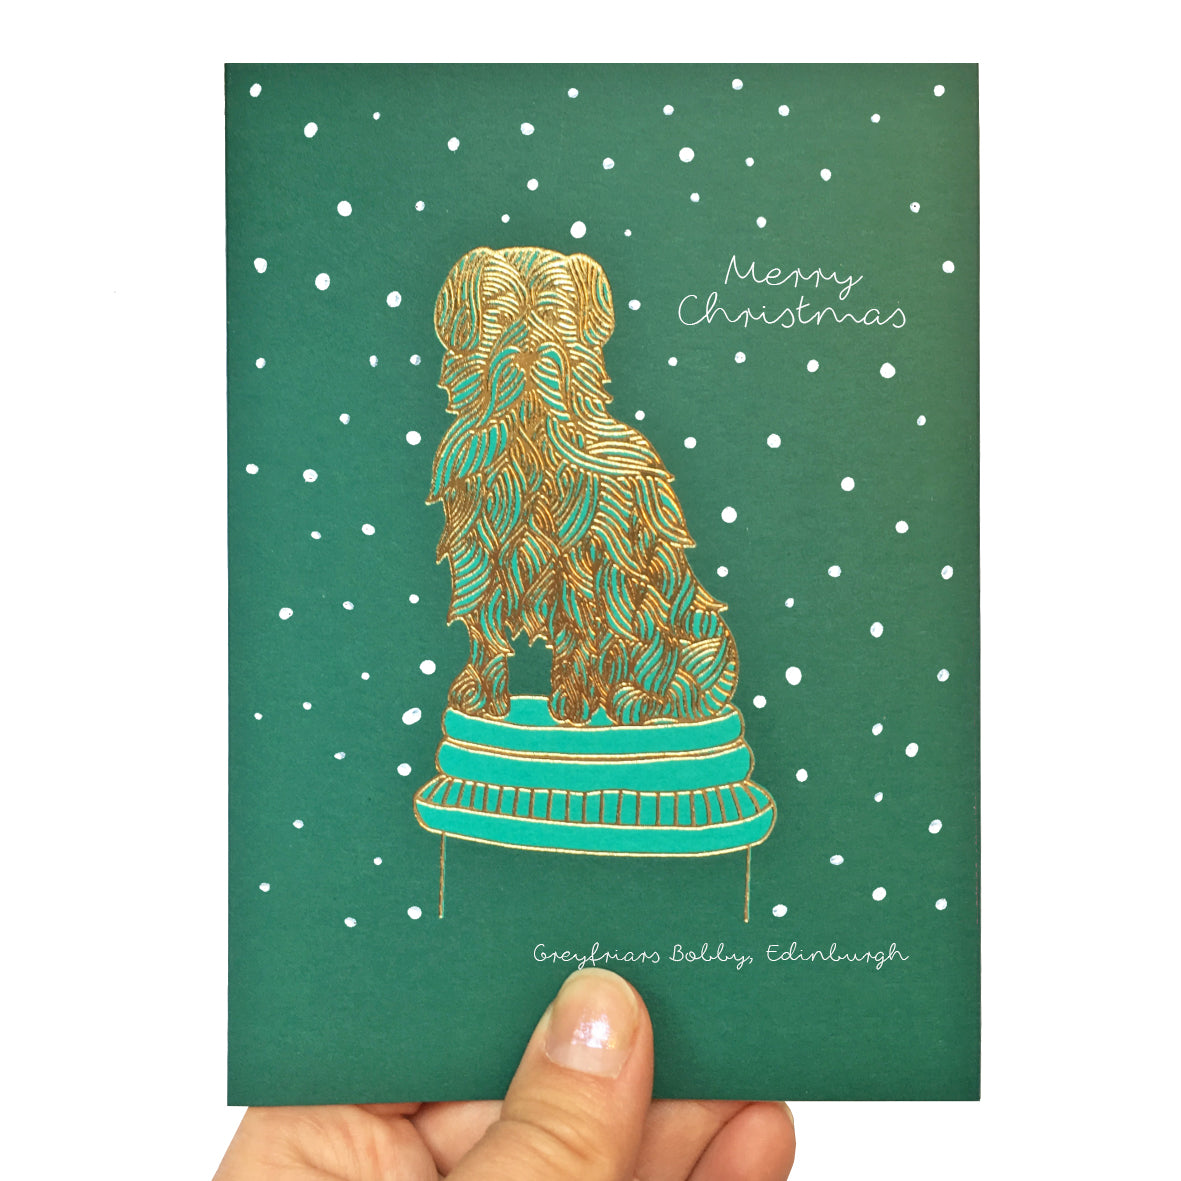 Turquoise Scottish Christmas card featuring greyfriars bobby